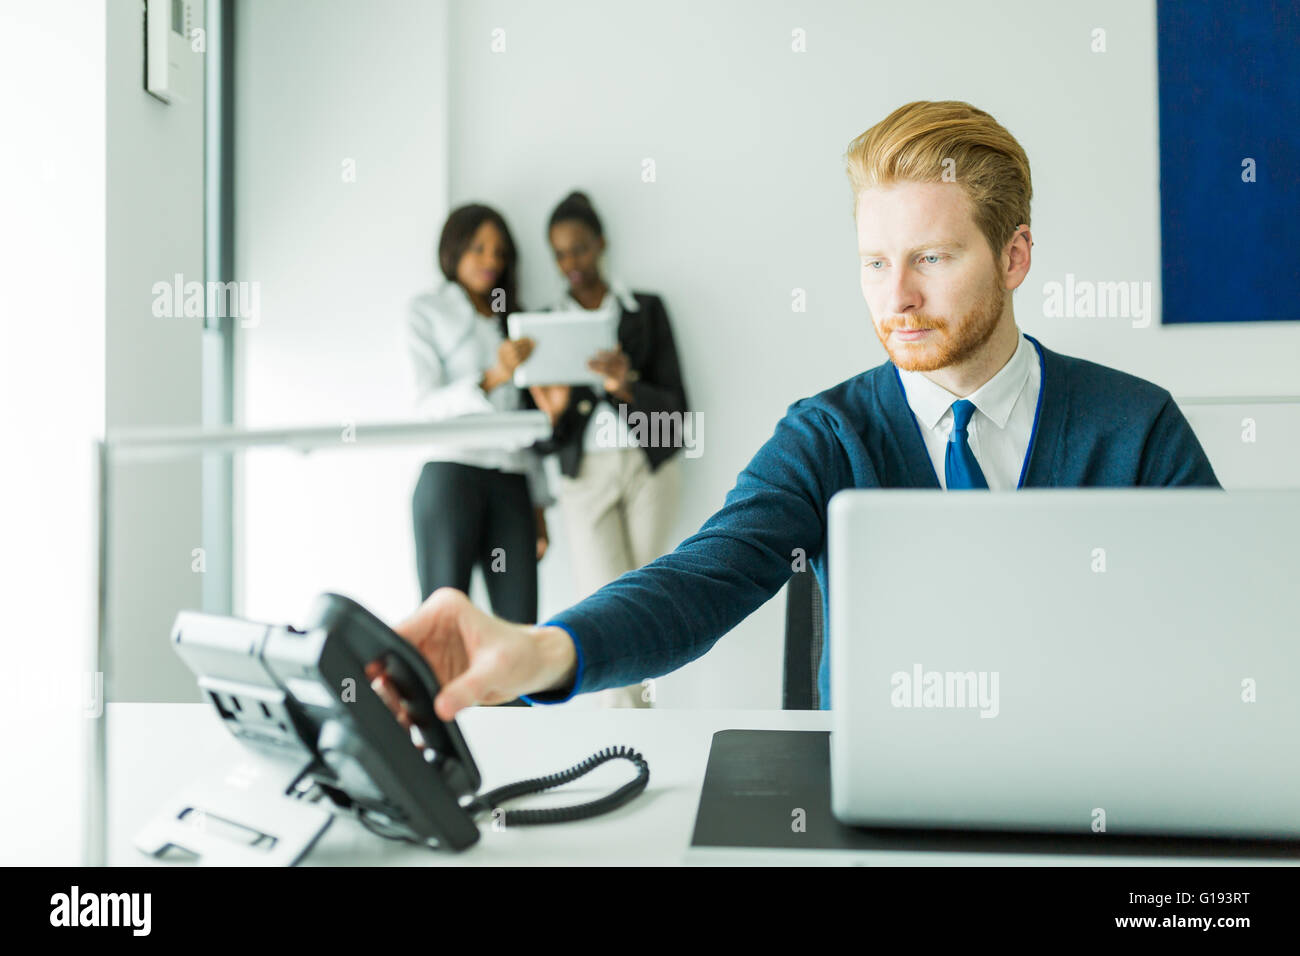 Businessman about to answer the phone with two beautiful,  young women having a conversation in the background - Stock Image